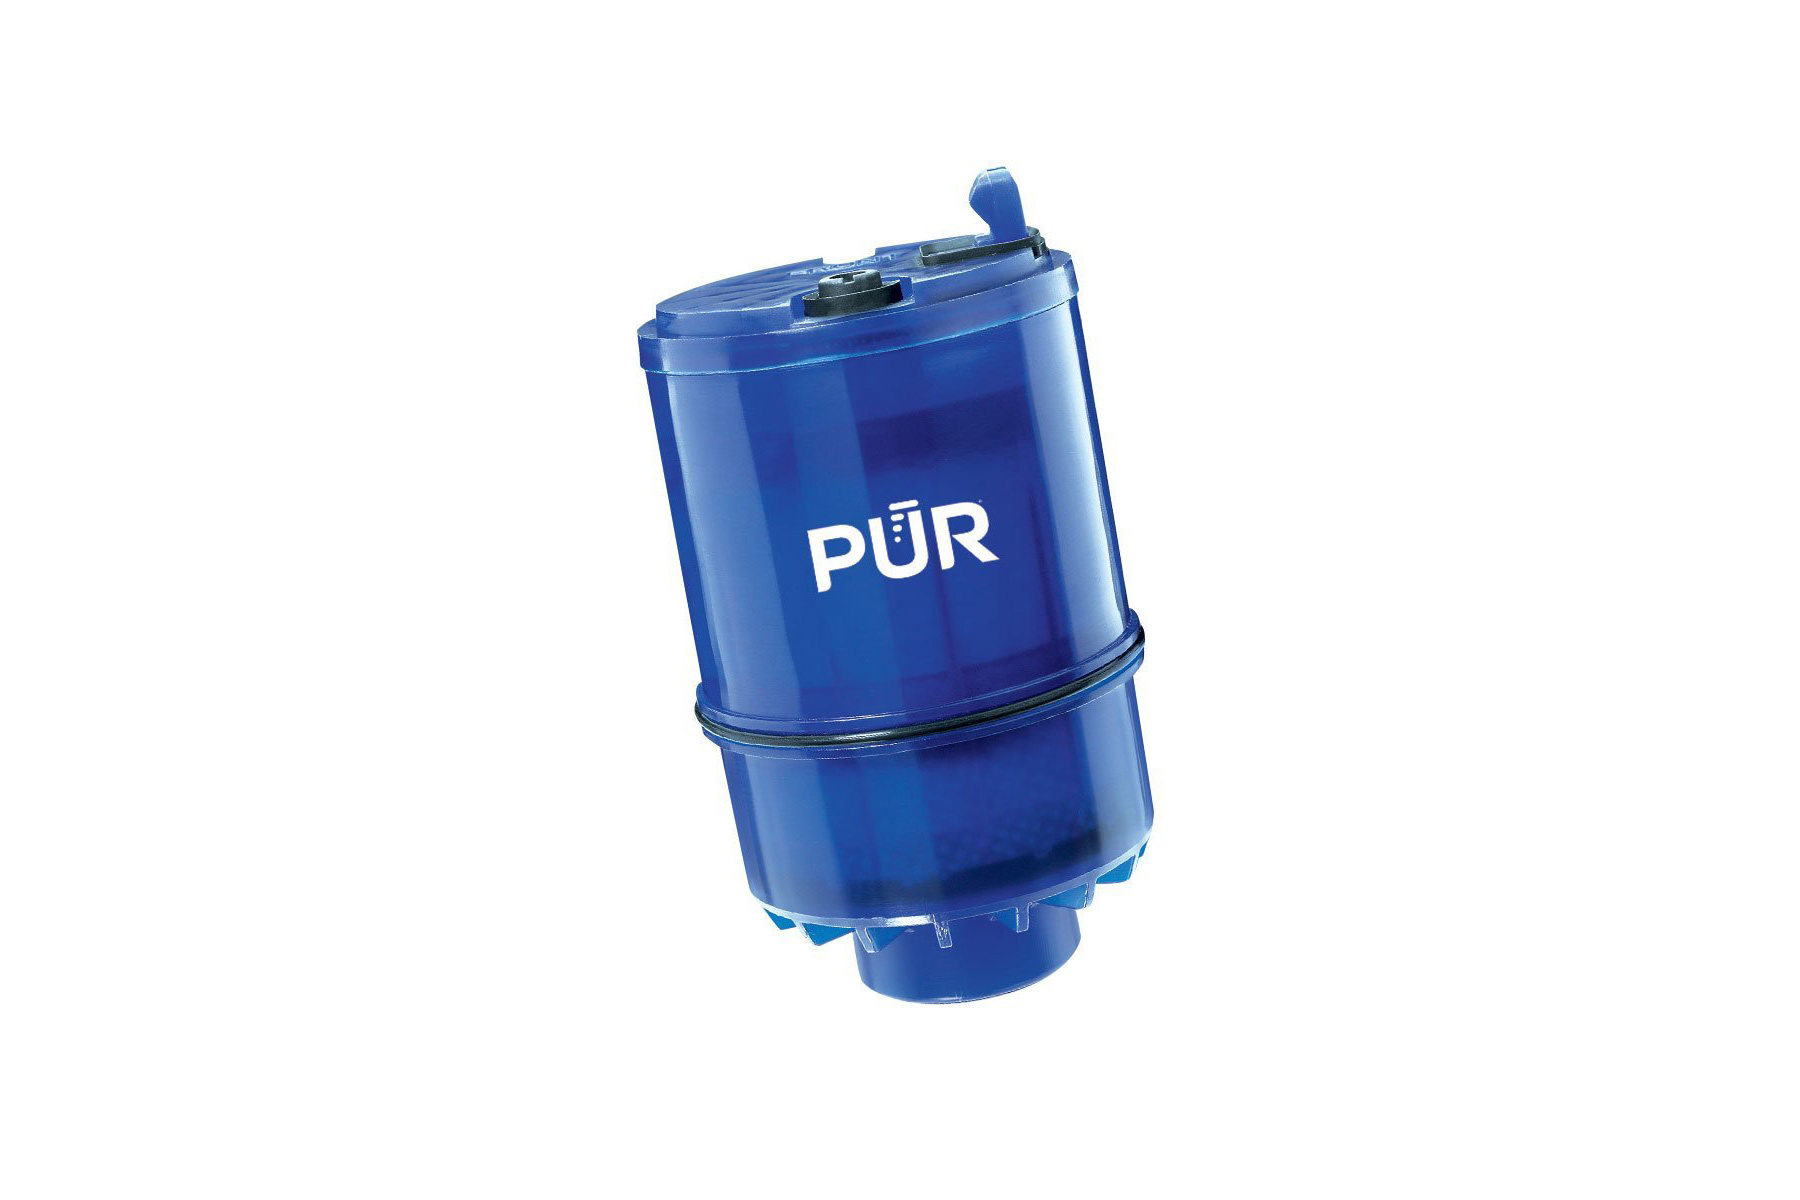 - PUR Replacement Filter 3pack - $22.49> Each filter provides up to 100 gallons of filtered water> Average consumption of 1200 gallons of water per year equals $89.96/year of replacement filter costs